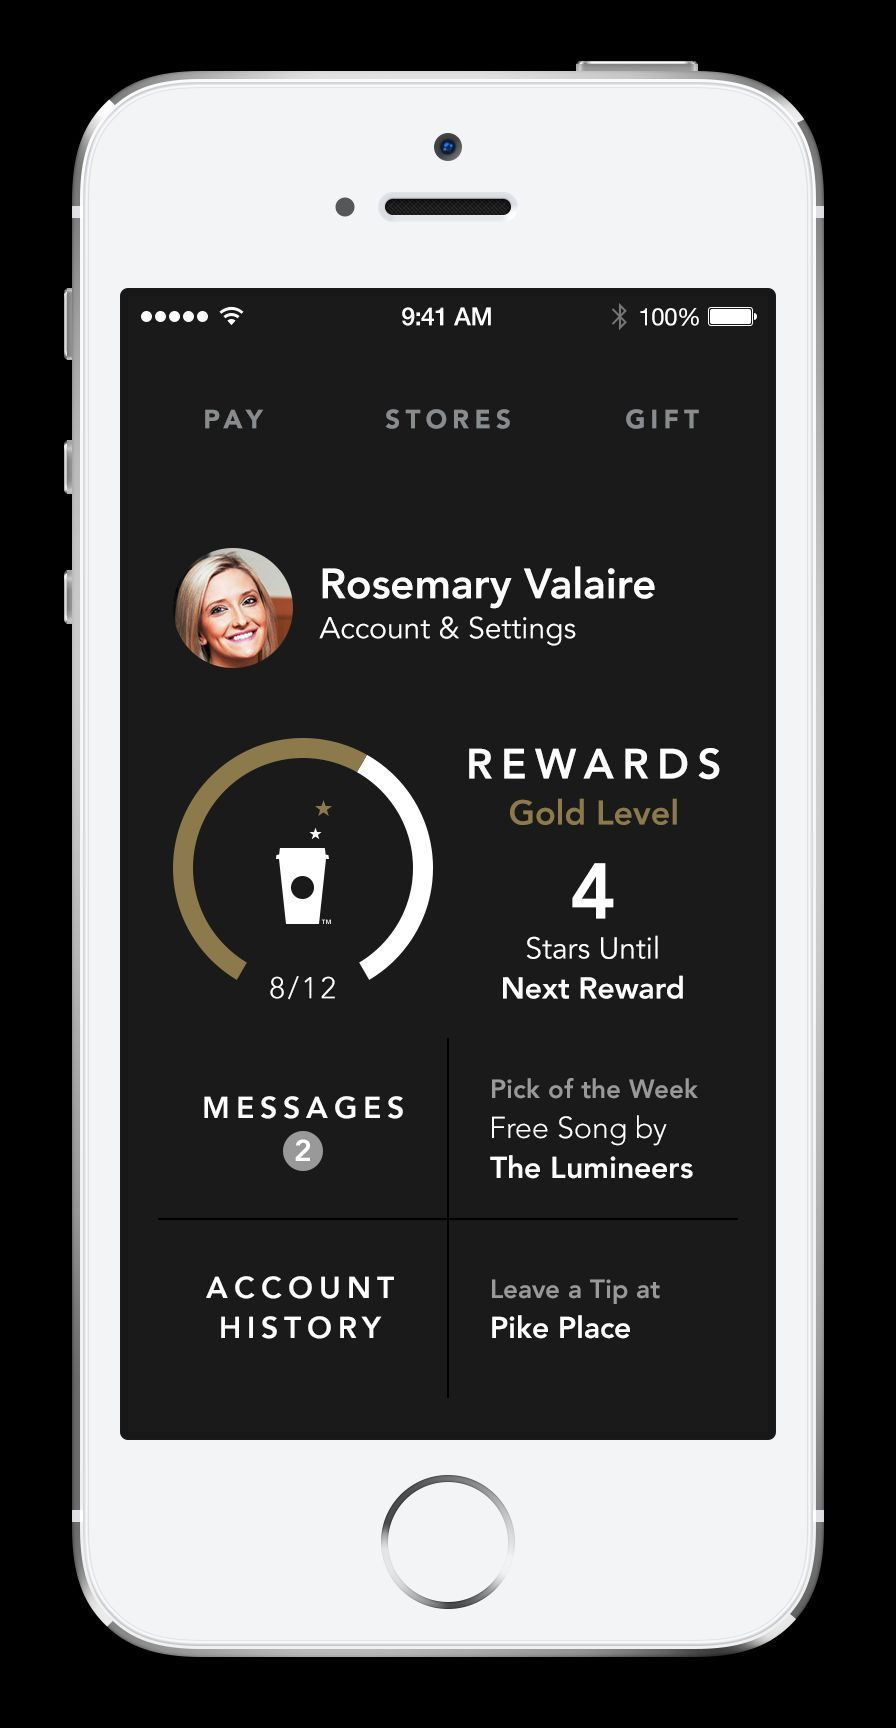 starbucks accelerates mobile payment leadership with release of enhanced starbucks app for